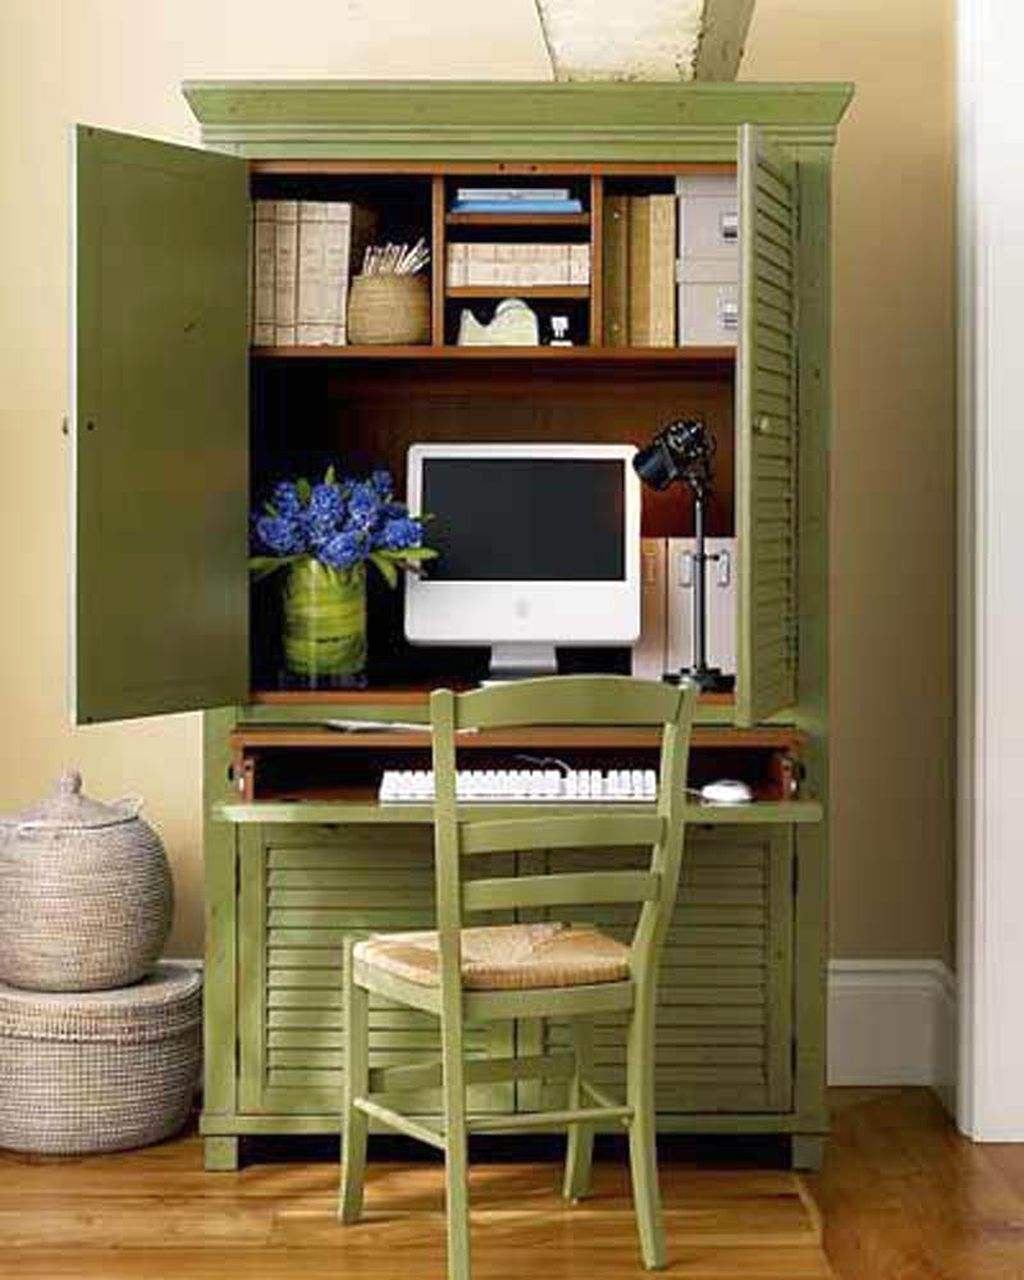 Green cupboard home office design ideas for small spaces for Home office decor ideas